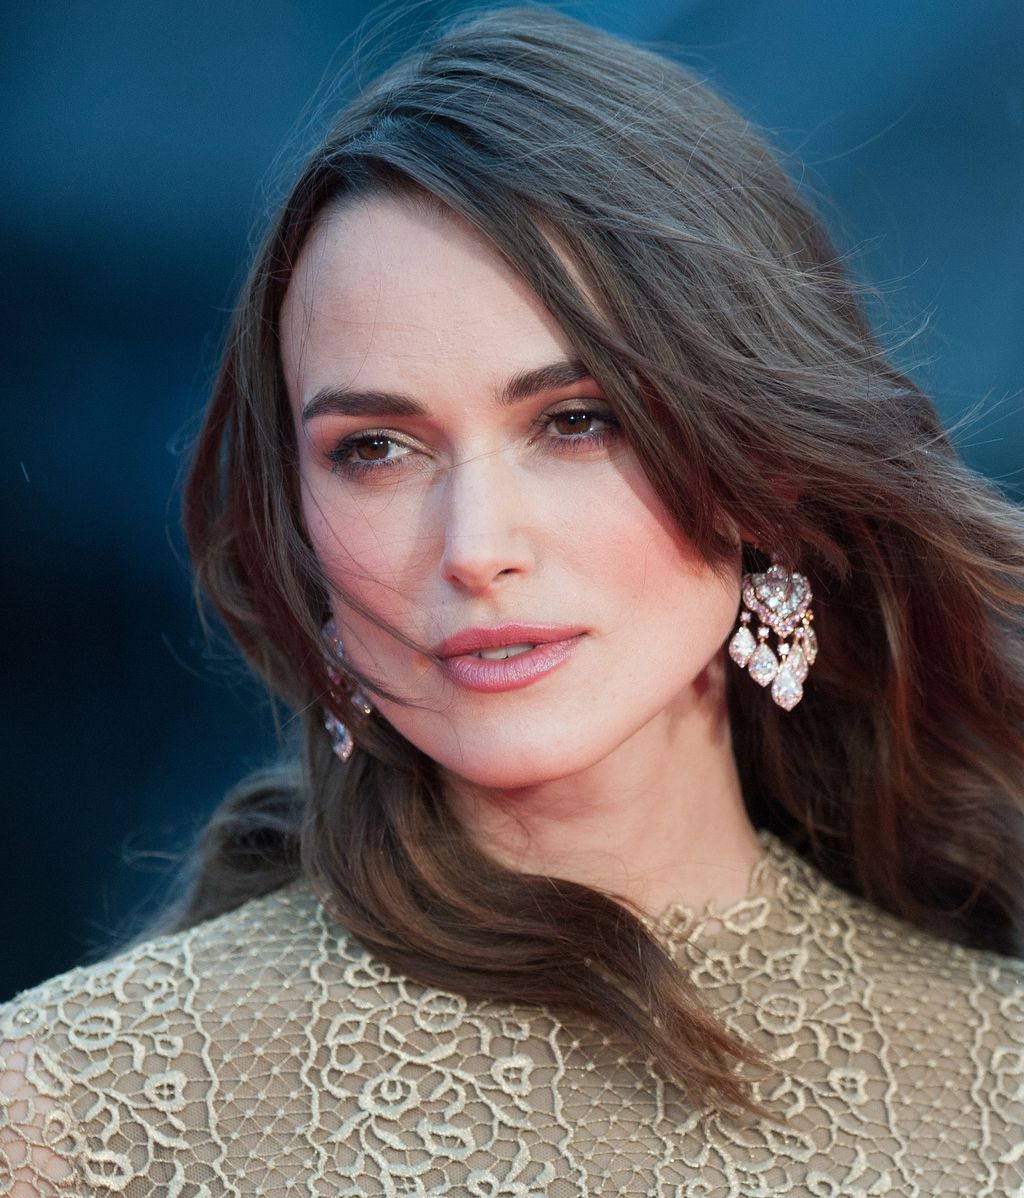 Keira Knightley en la premiere de The Imitation Game